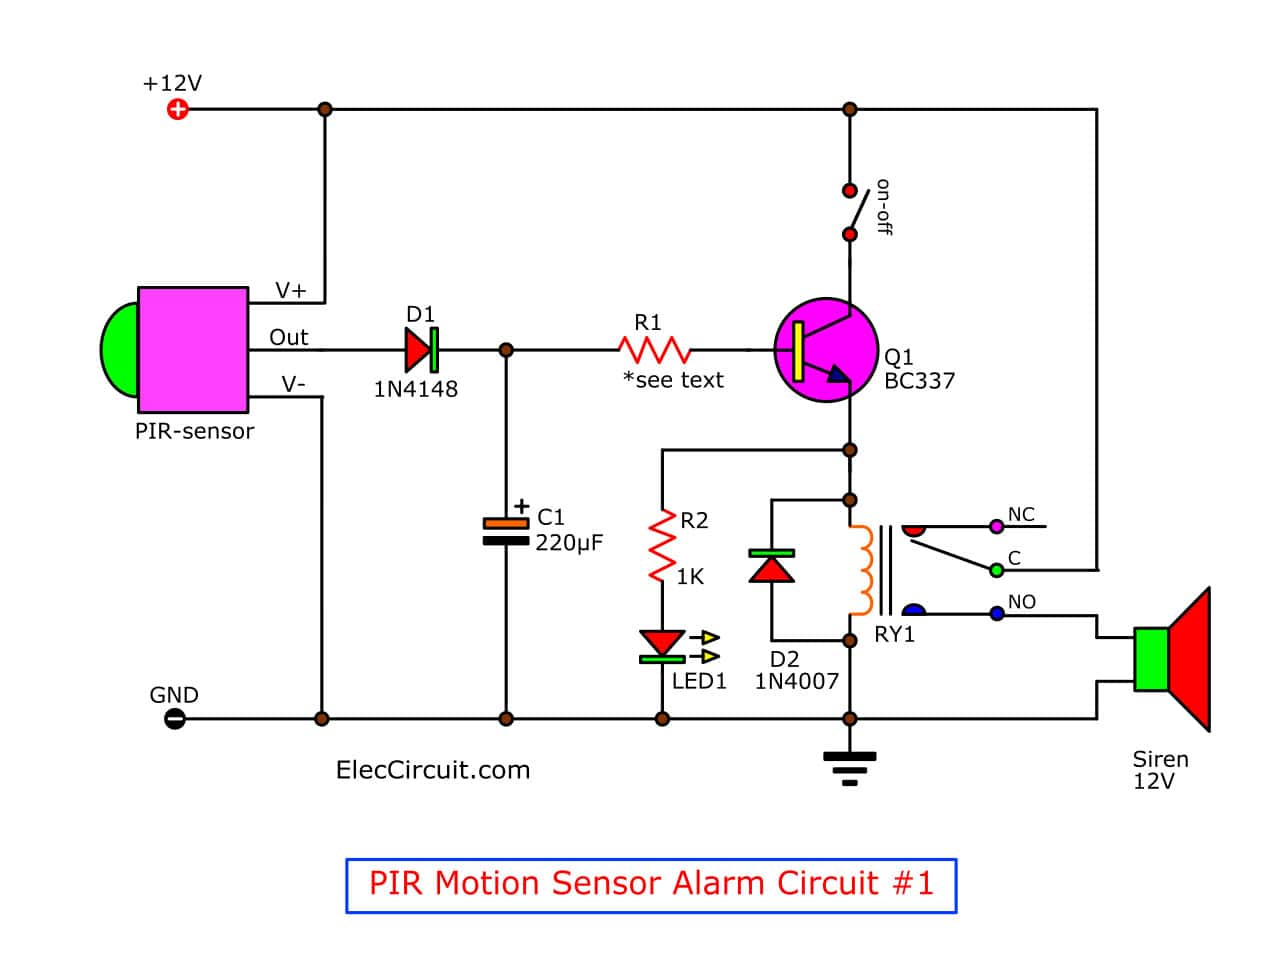 hight resolution of motion detector alarm circuit with pir sensor simple and cheap circuit diagram gtpir motion sensor alarm circuit